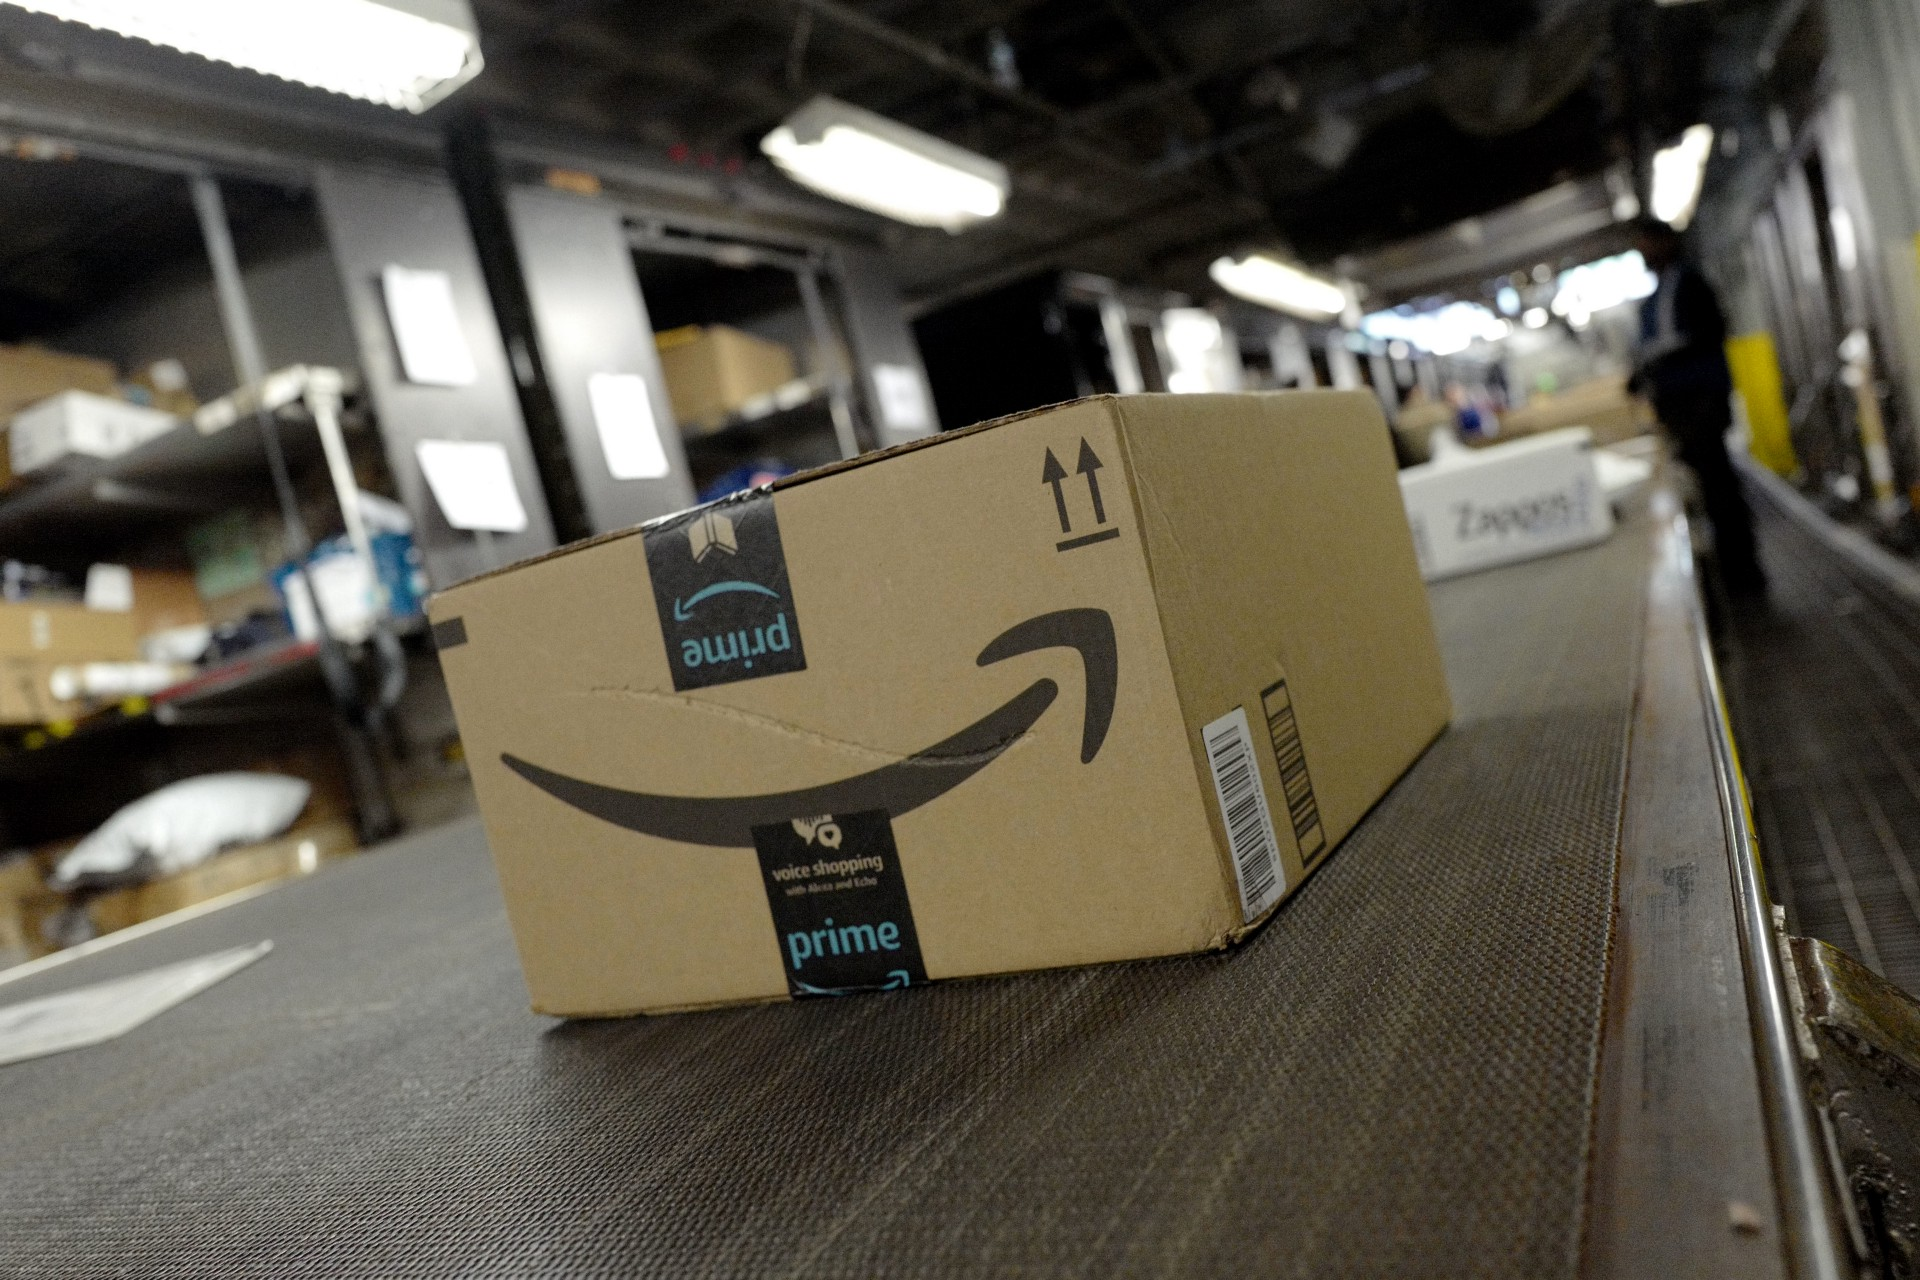 Amazon Expands Prime Program To Include People In Food Assistance Programs  How To Eat Fried Worms